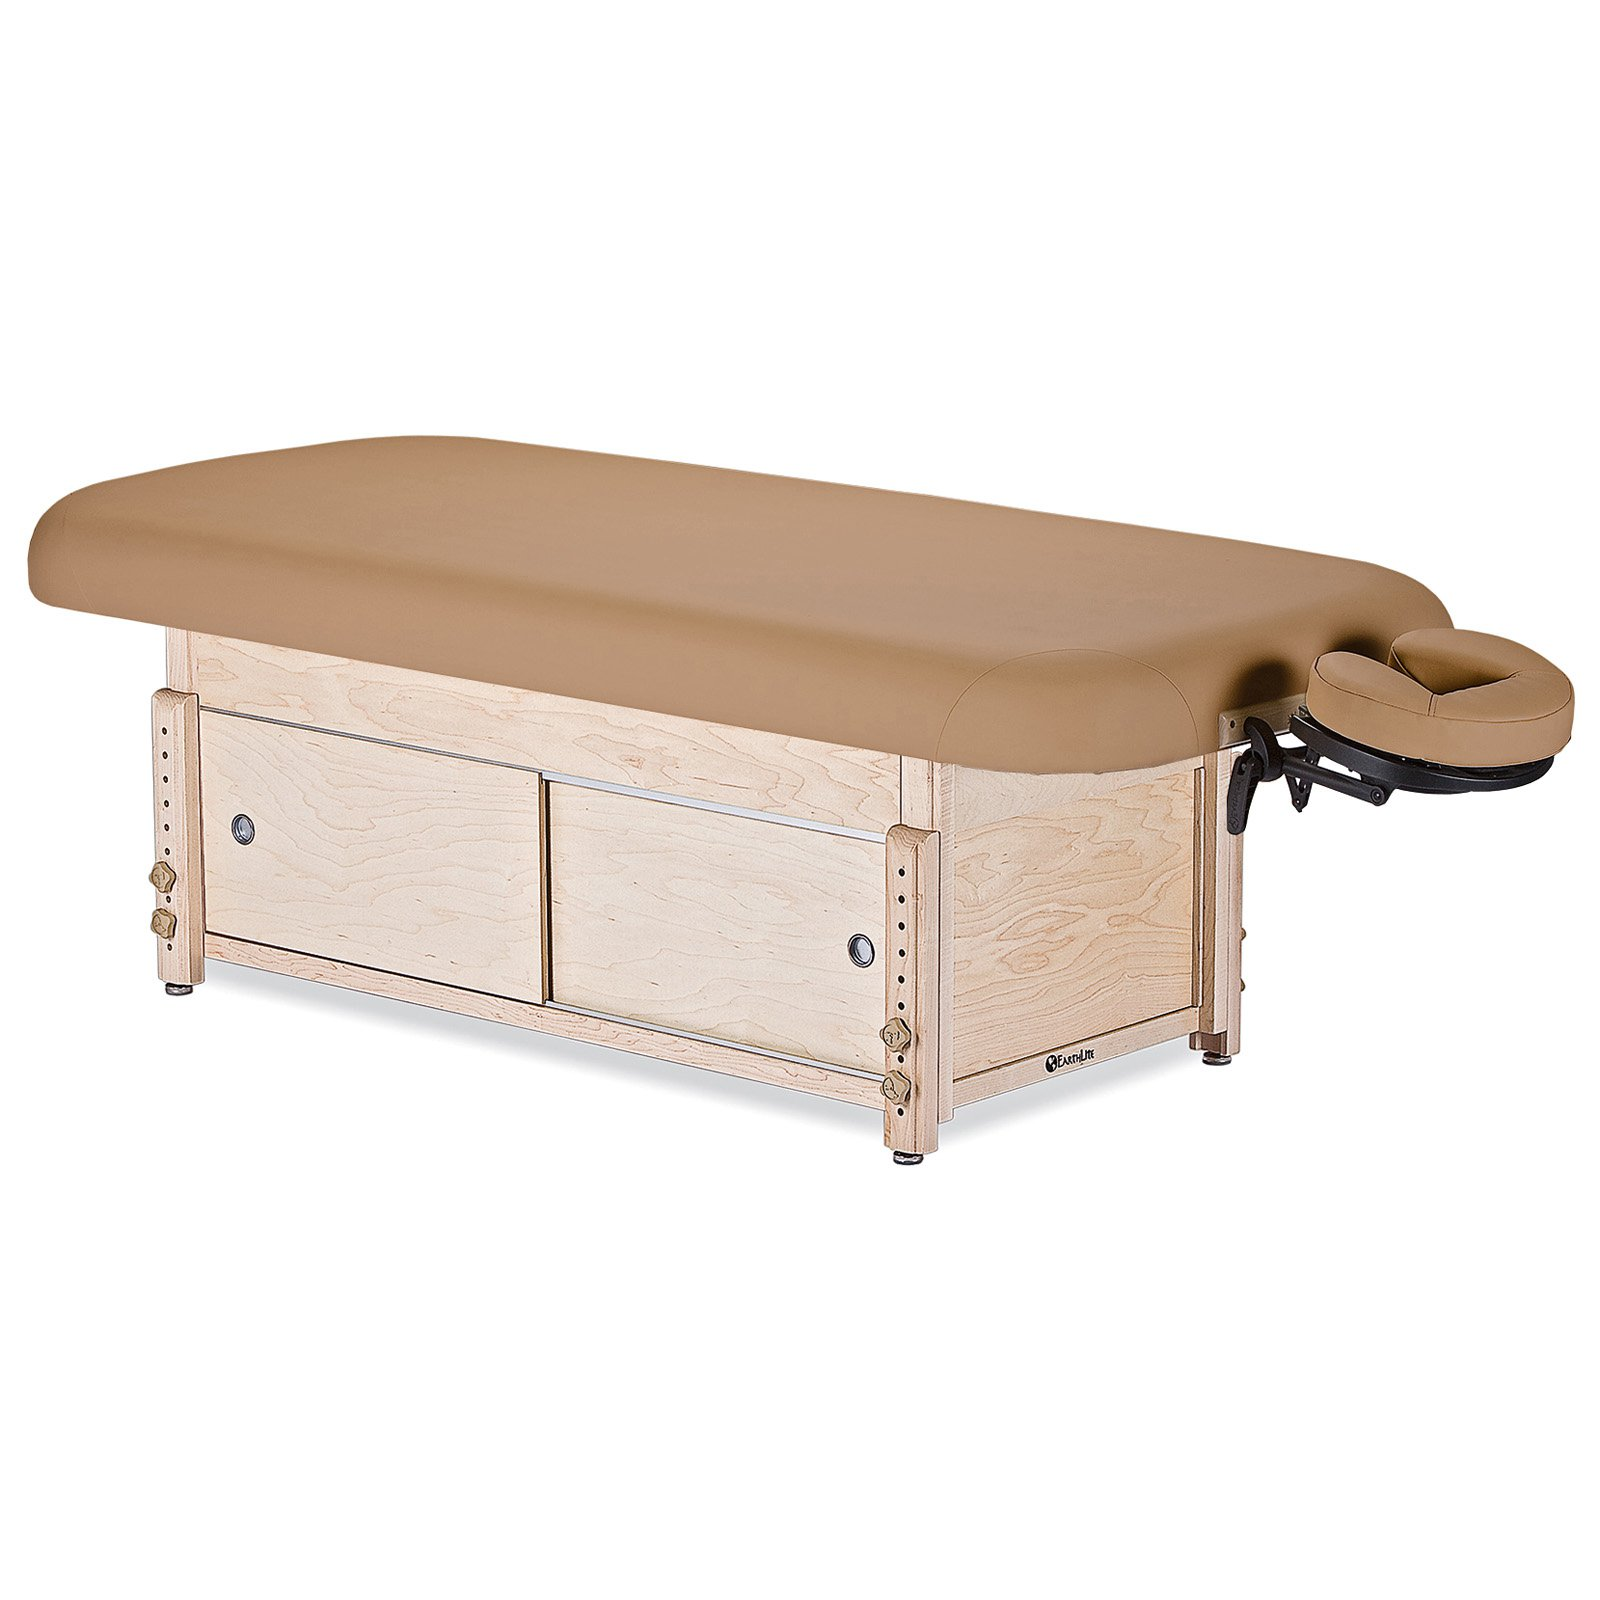 EarthLite Sedona Stationary Massage Table with Cabinet